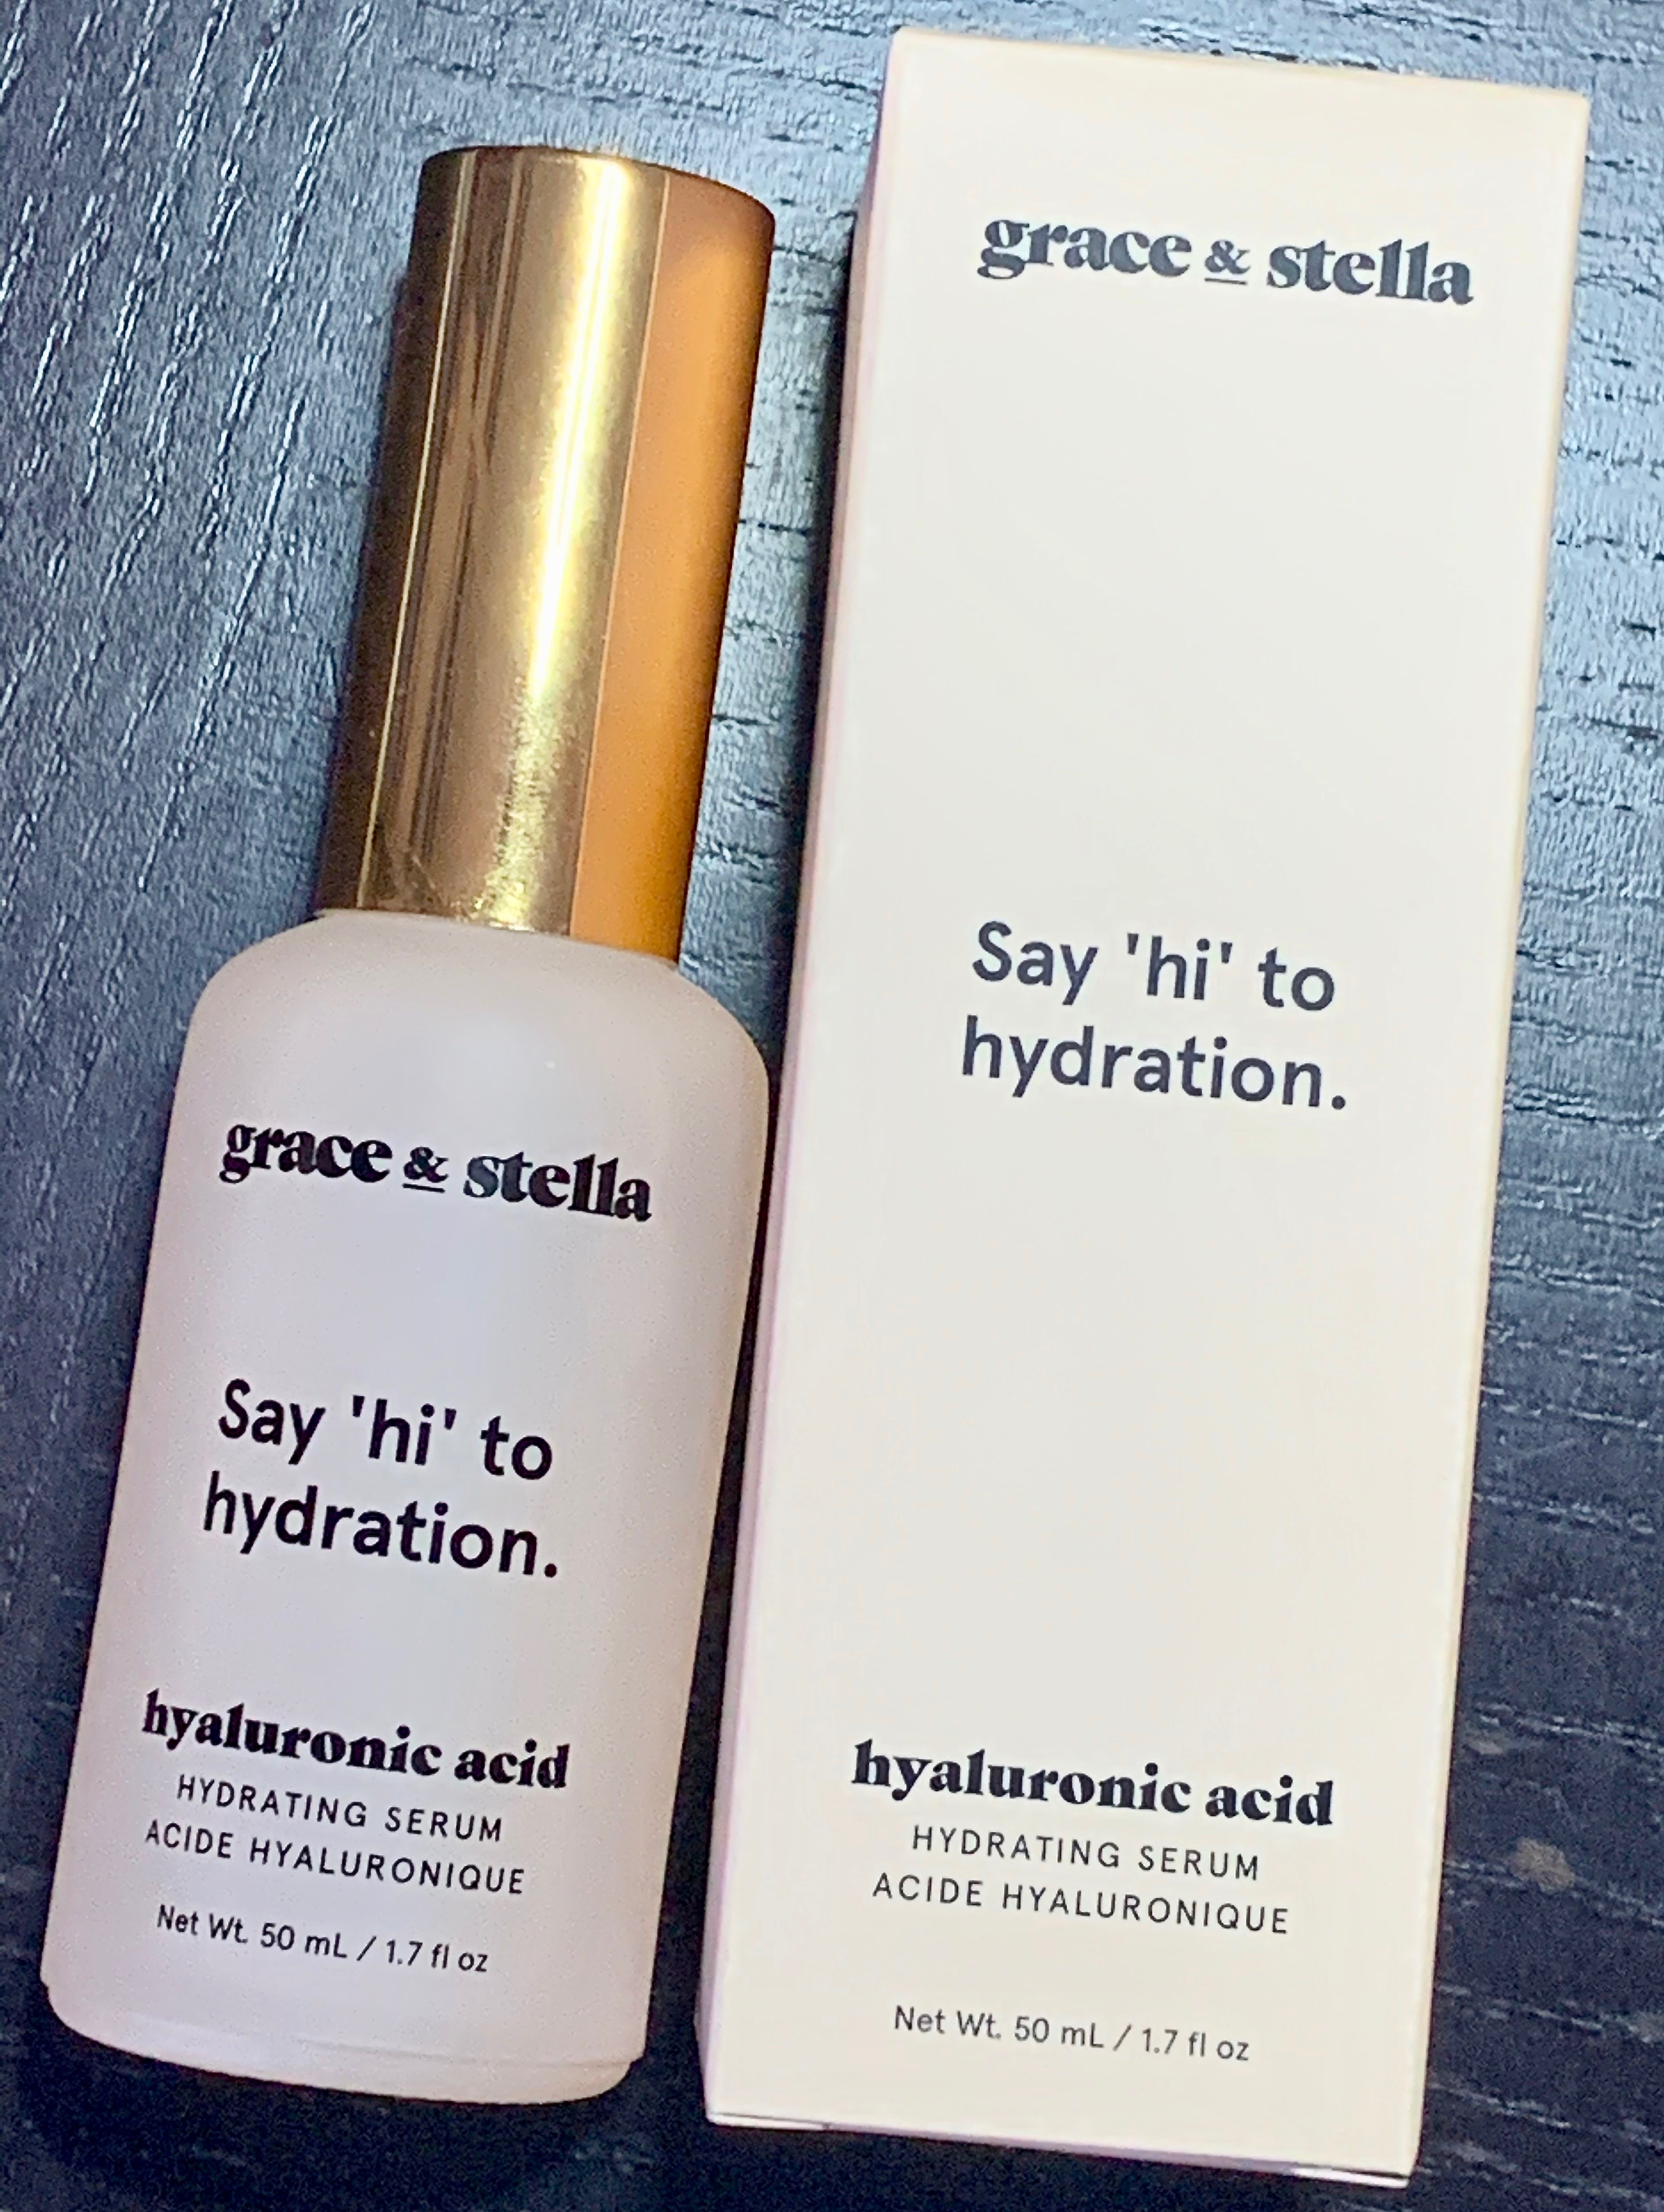 grace & stella hyaluronic acid serum